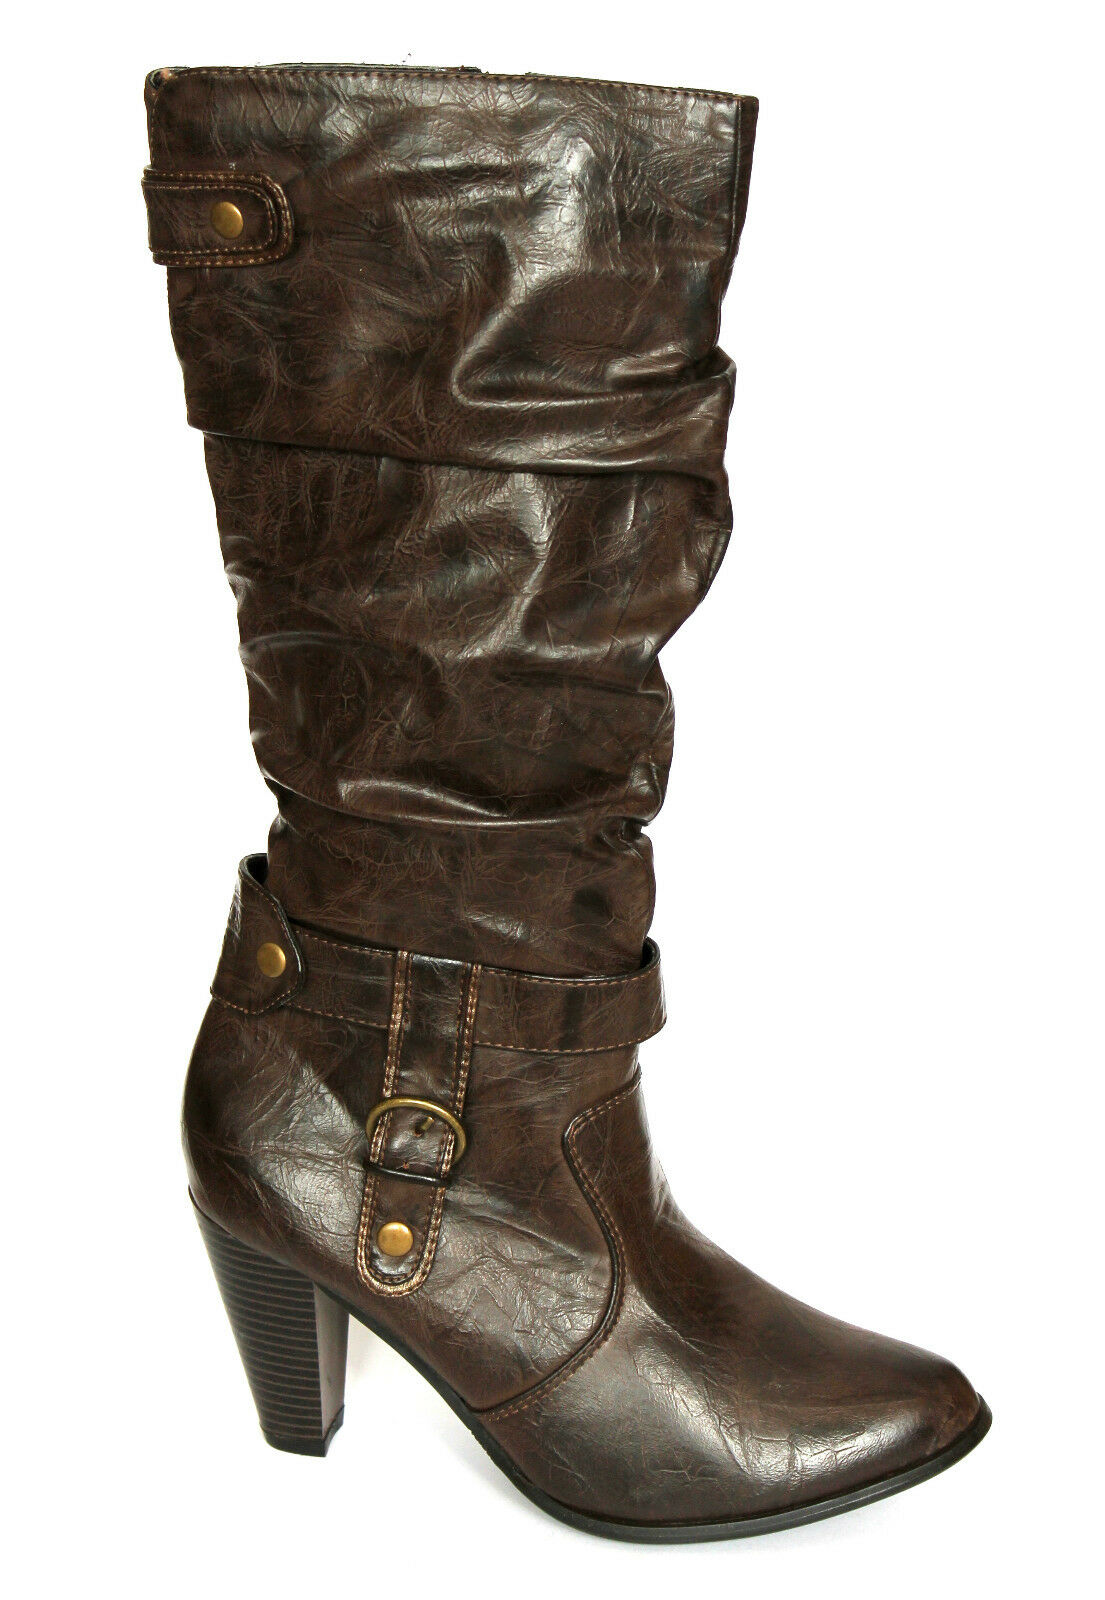 Gioseppo Ladies Yuna High Heel Knee High Slouch Boots RRP